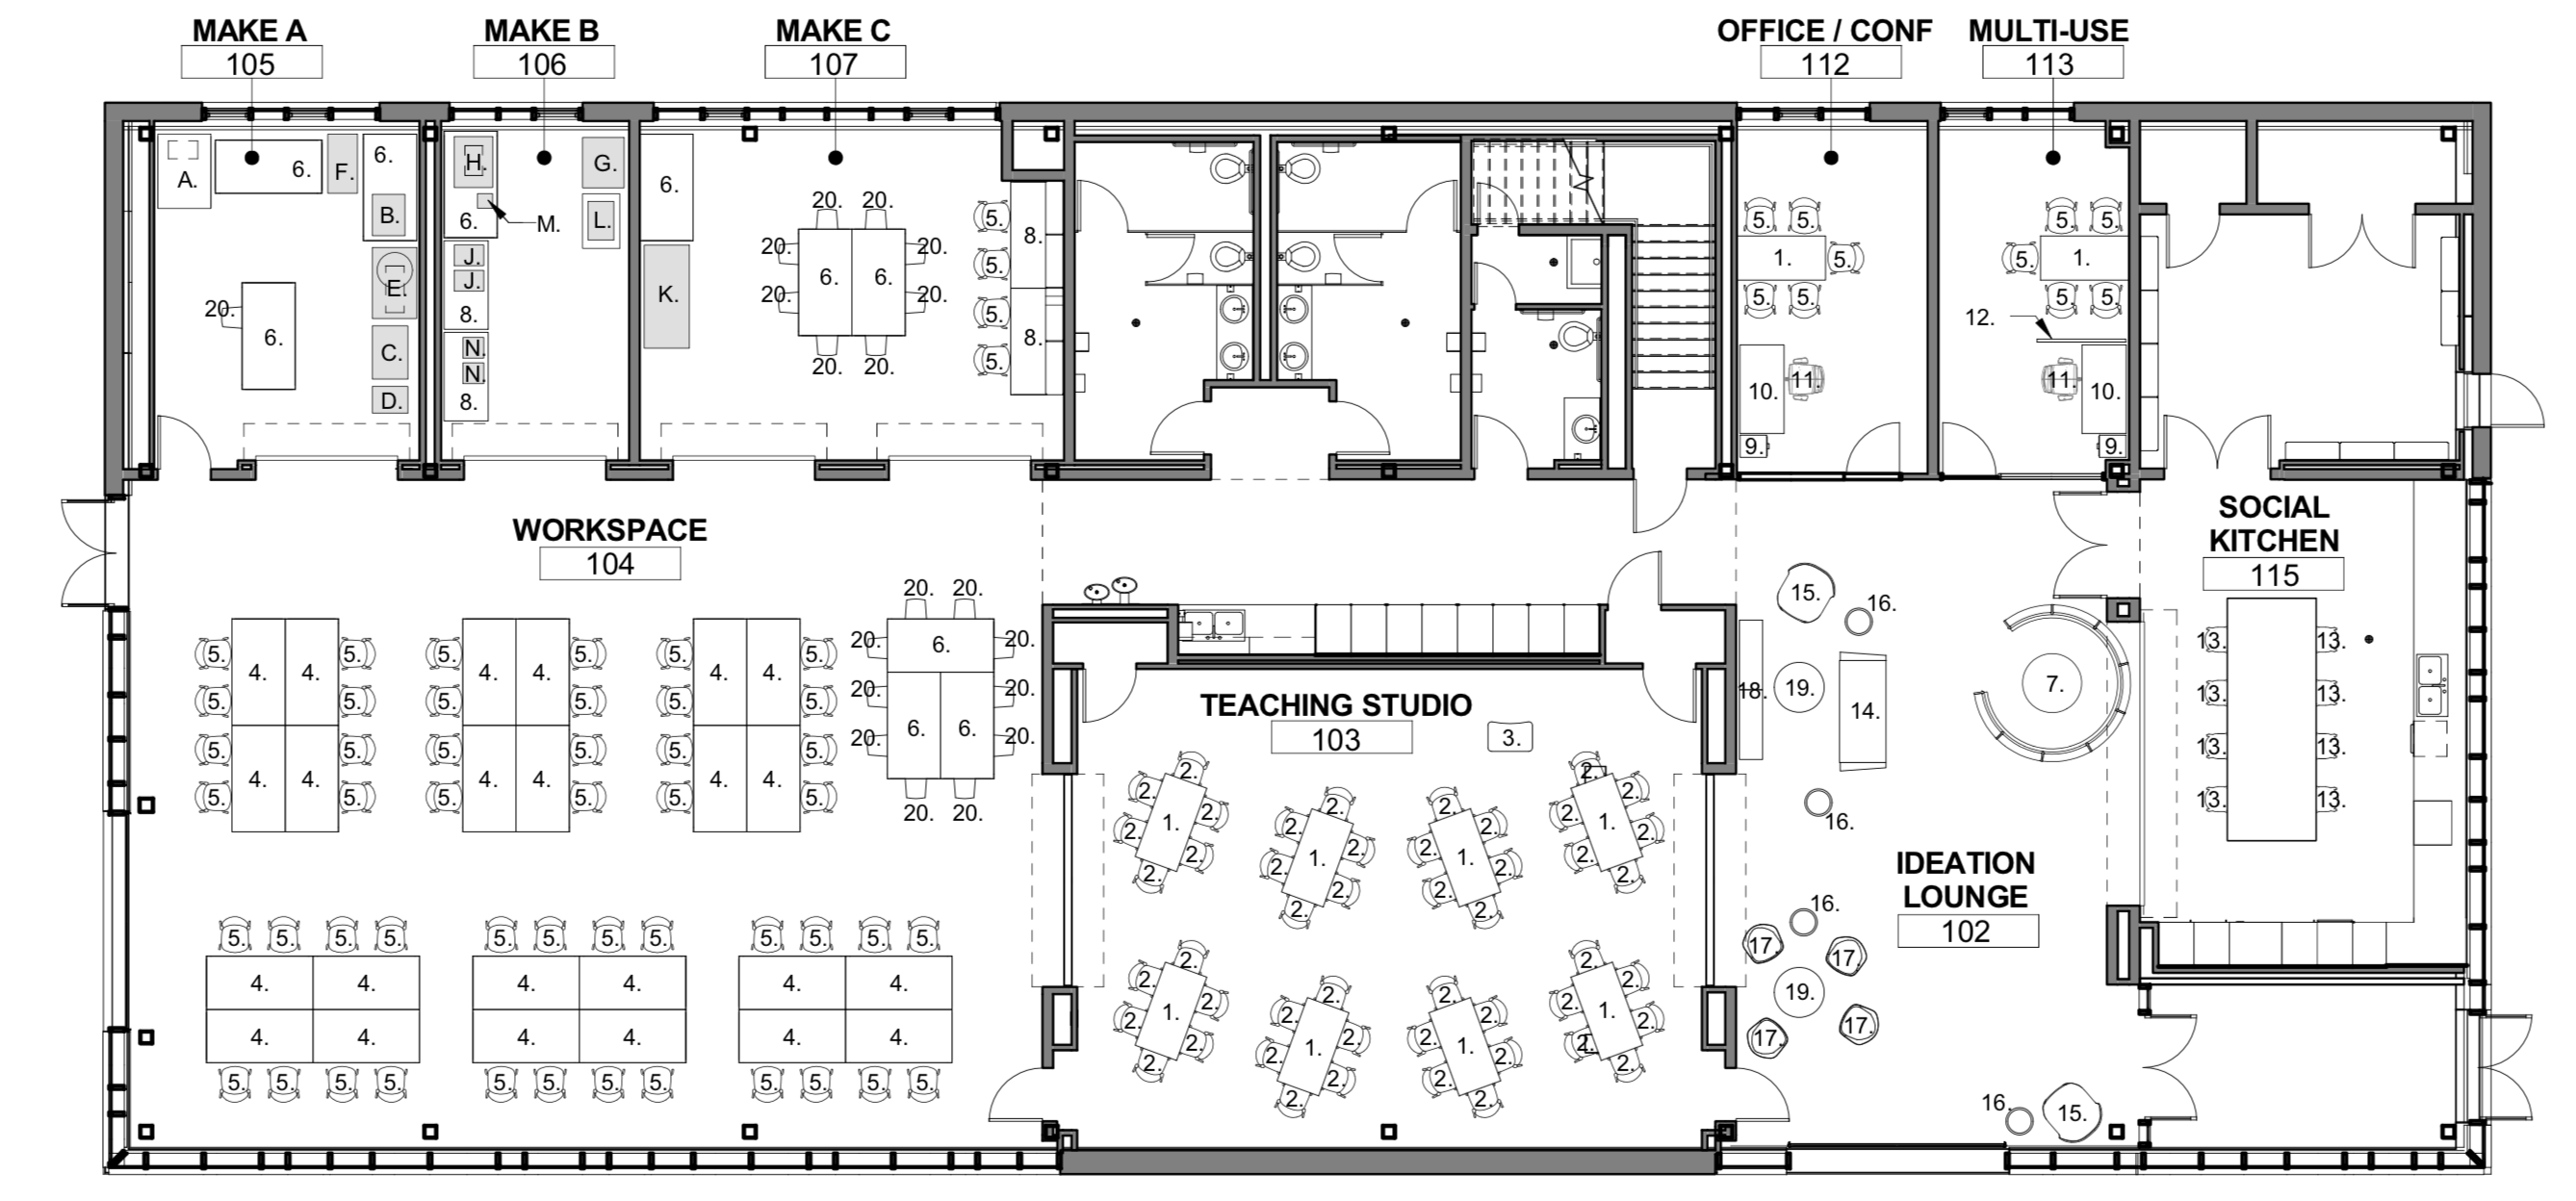 Bookable spaces are: Social Kitchen (up to 15), Ideation Lounge (up to 25), Teaching Studio (up to 45), and Office/Conf. (up to 8).  These spaces may be combined into a single reservation. It is not possible to book the WorkSpace or the Make studios and those spaces may be in use by students at all times.